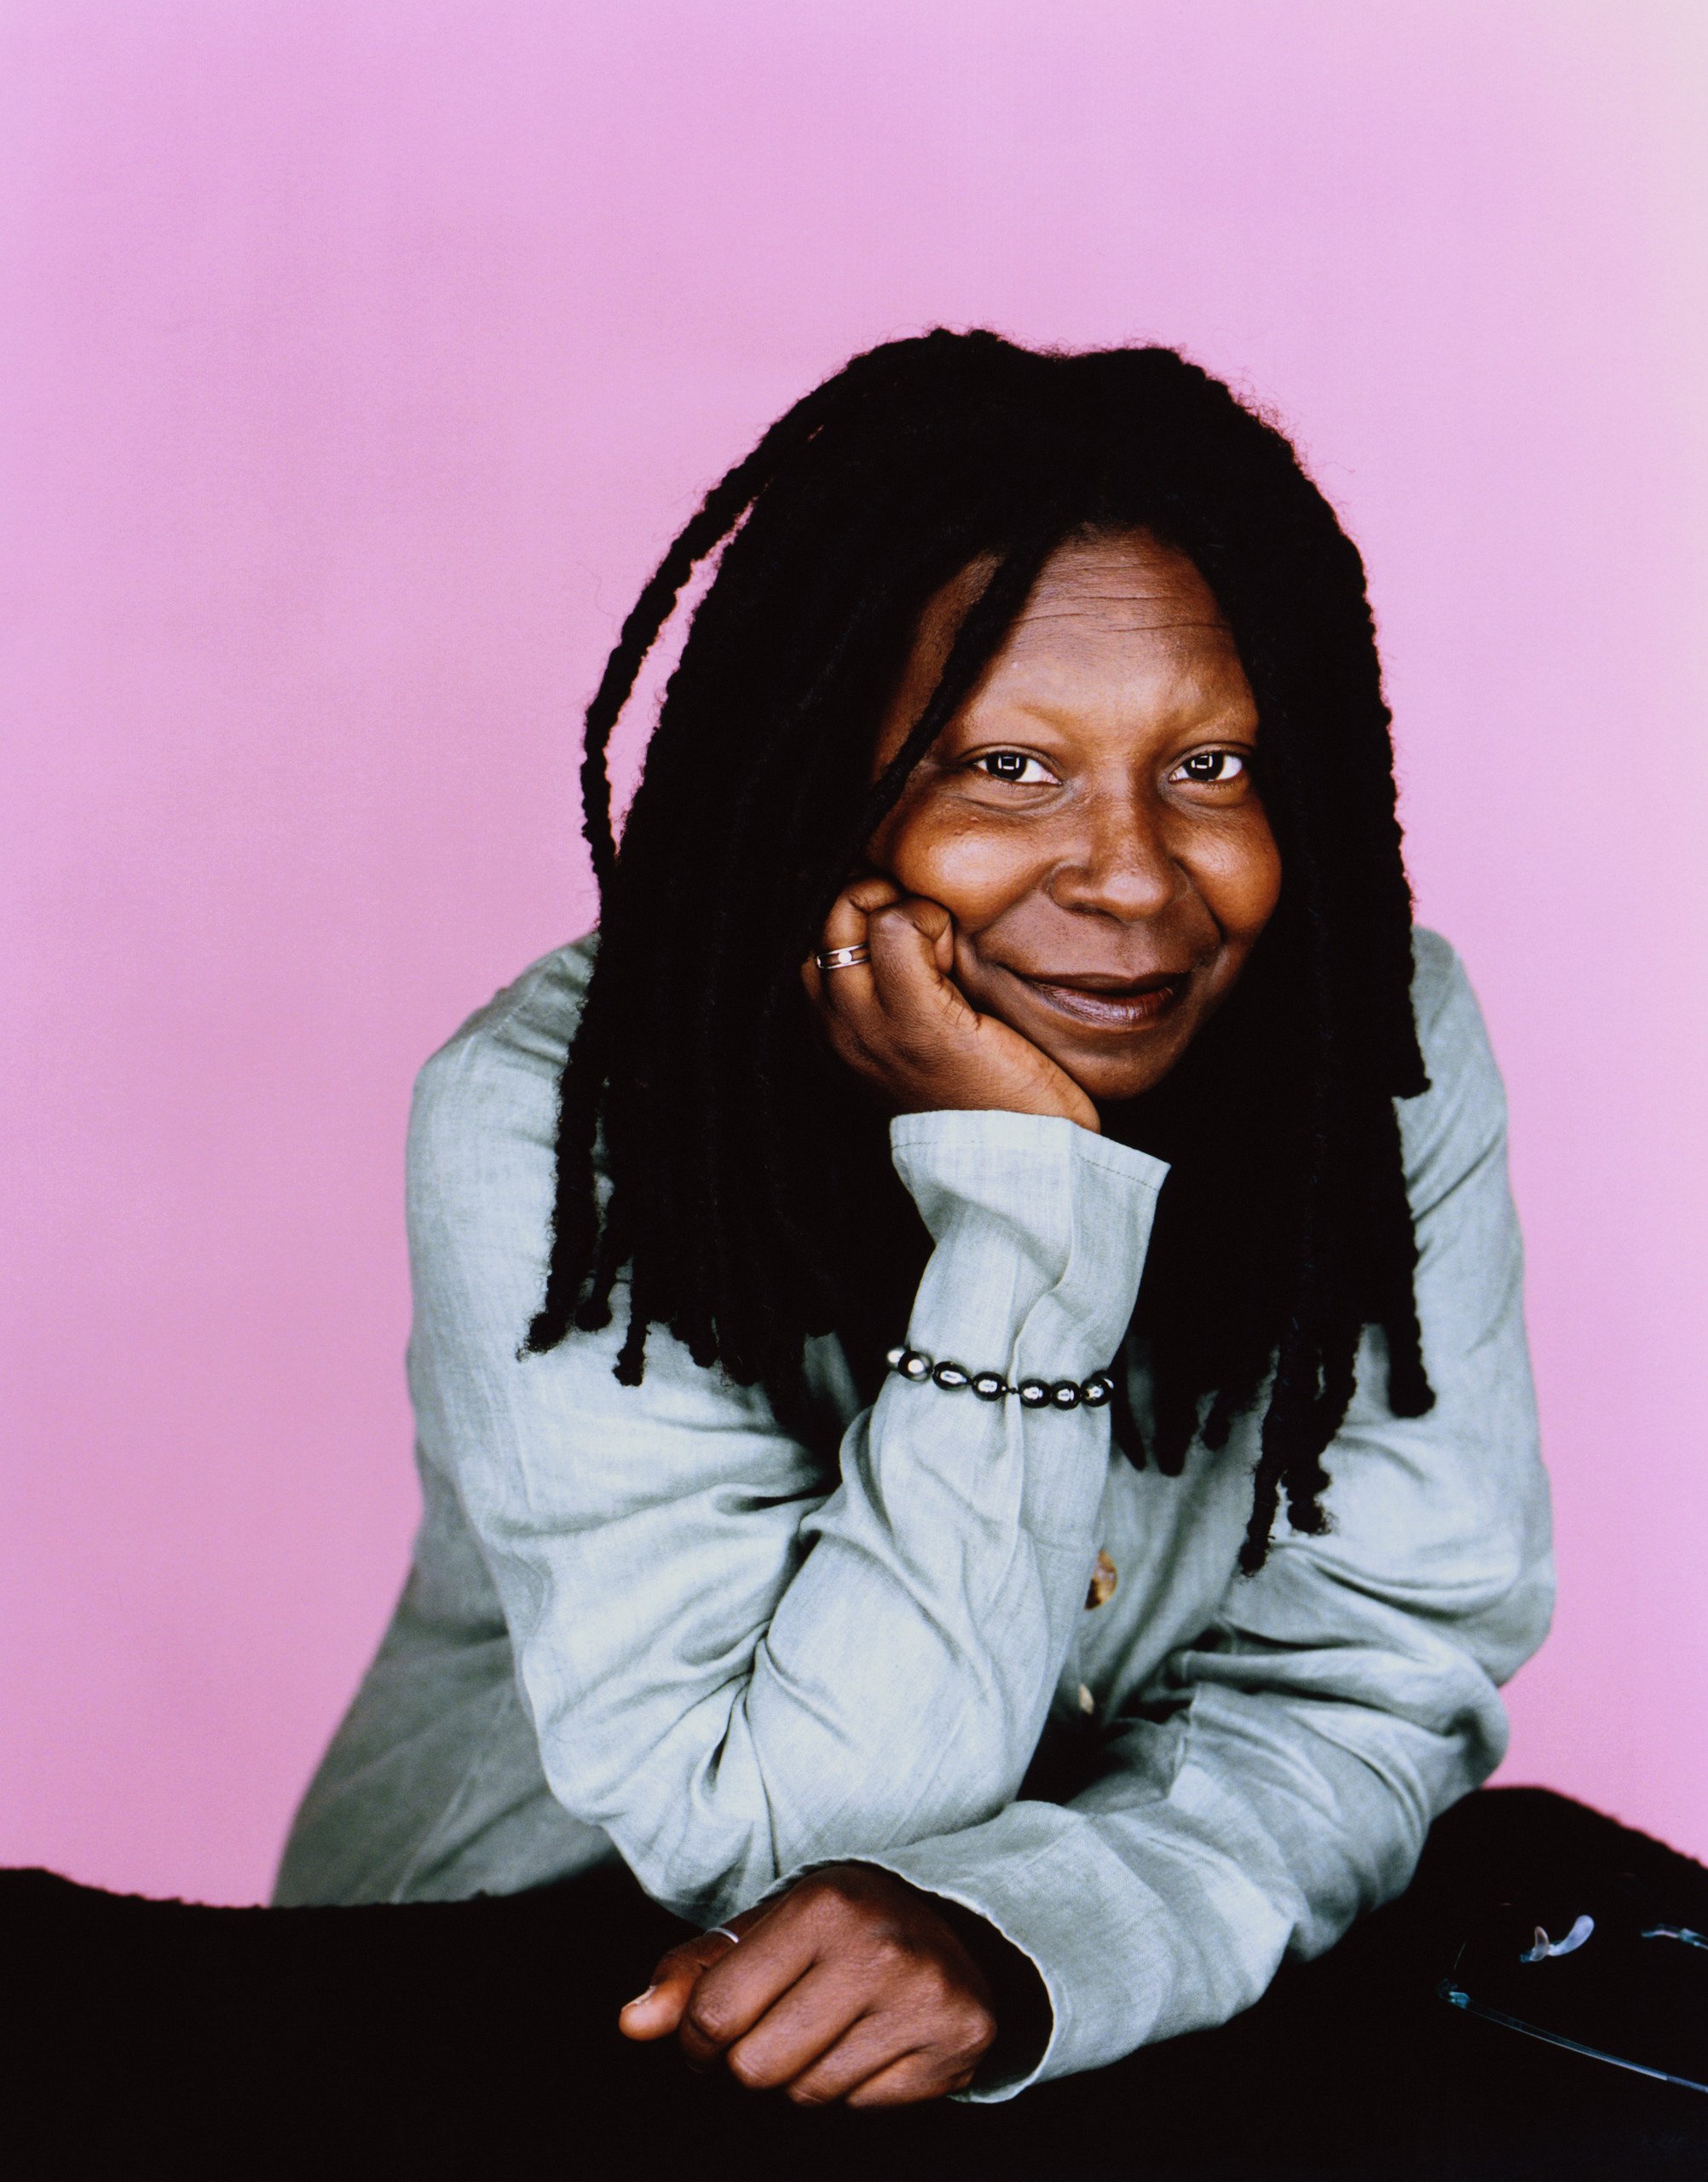 whoopi glodberg Find great deals on ebay for whoopi goldberg and whoopi goldberg autographed shop with confidence.